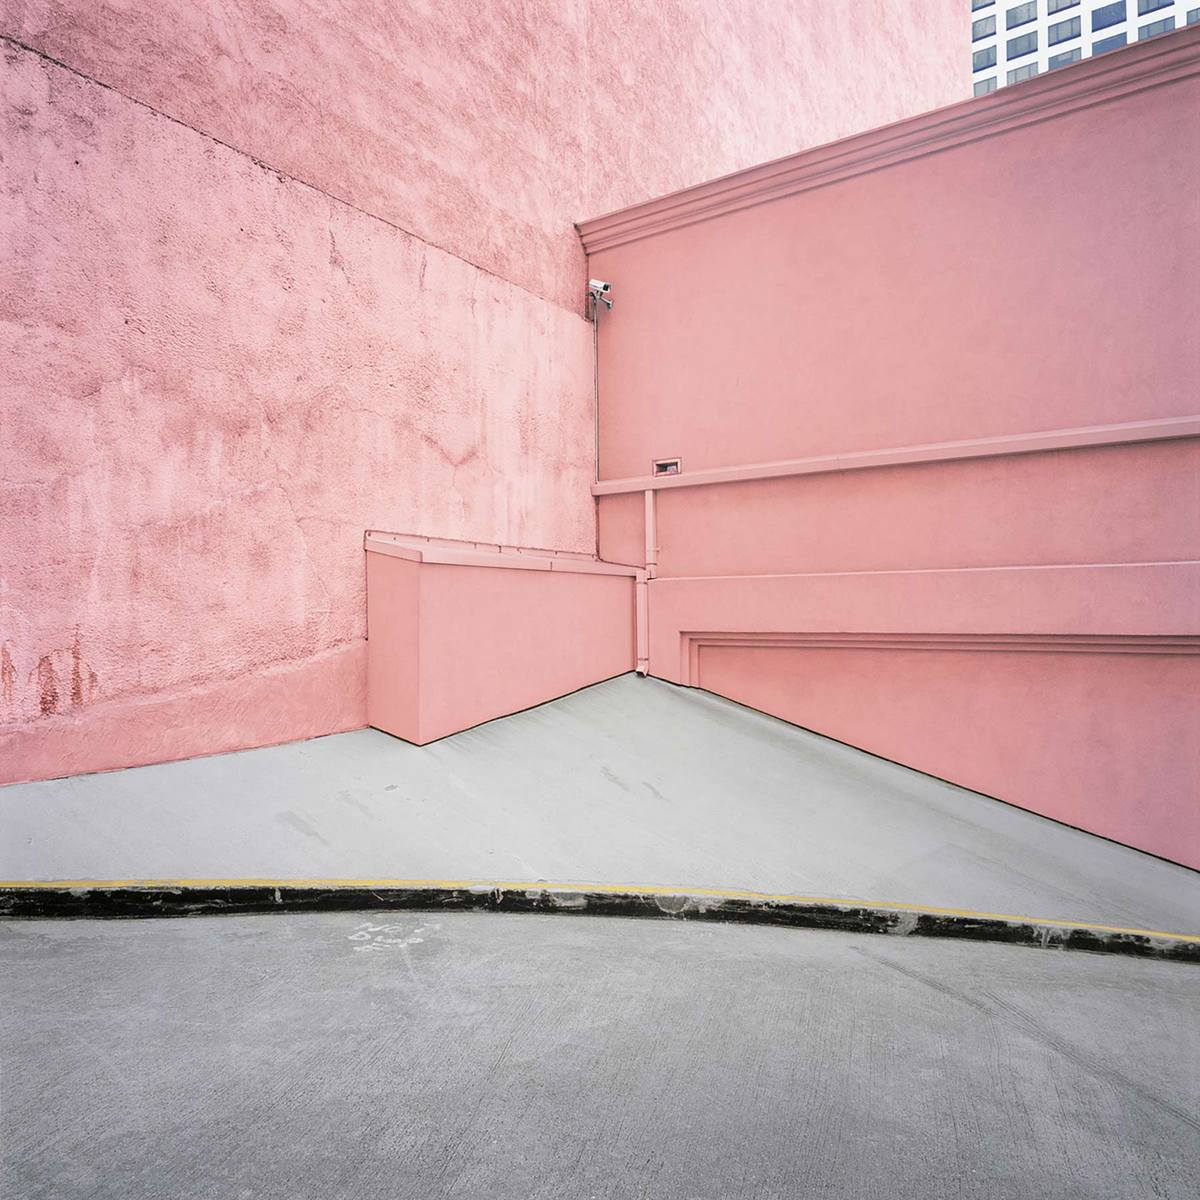 Pink Wall Los Angeles - Daniel Mirer